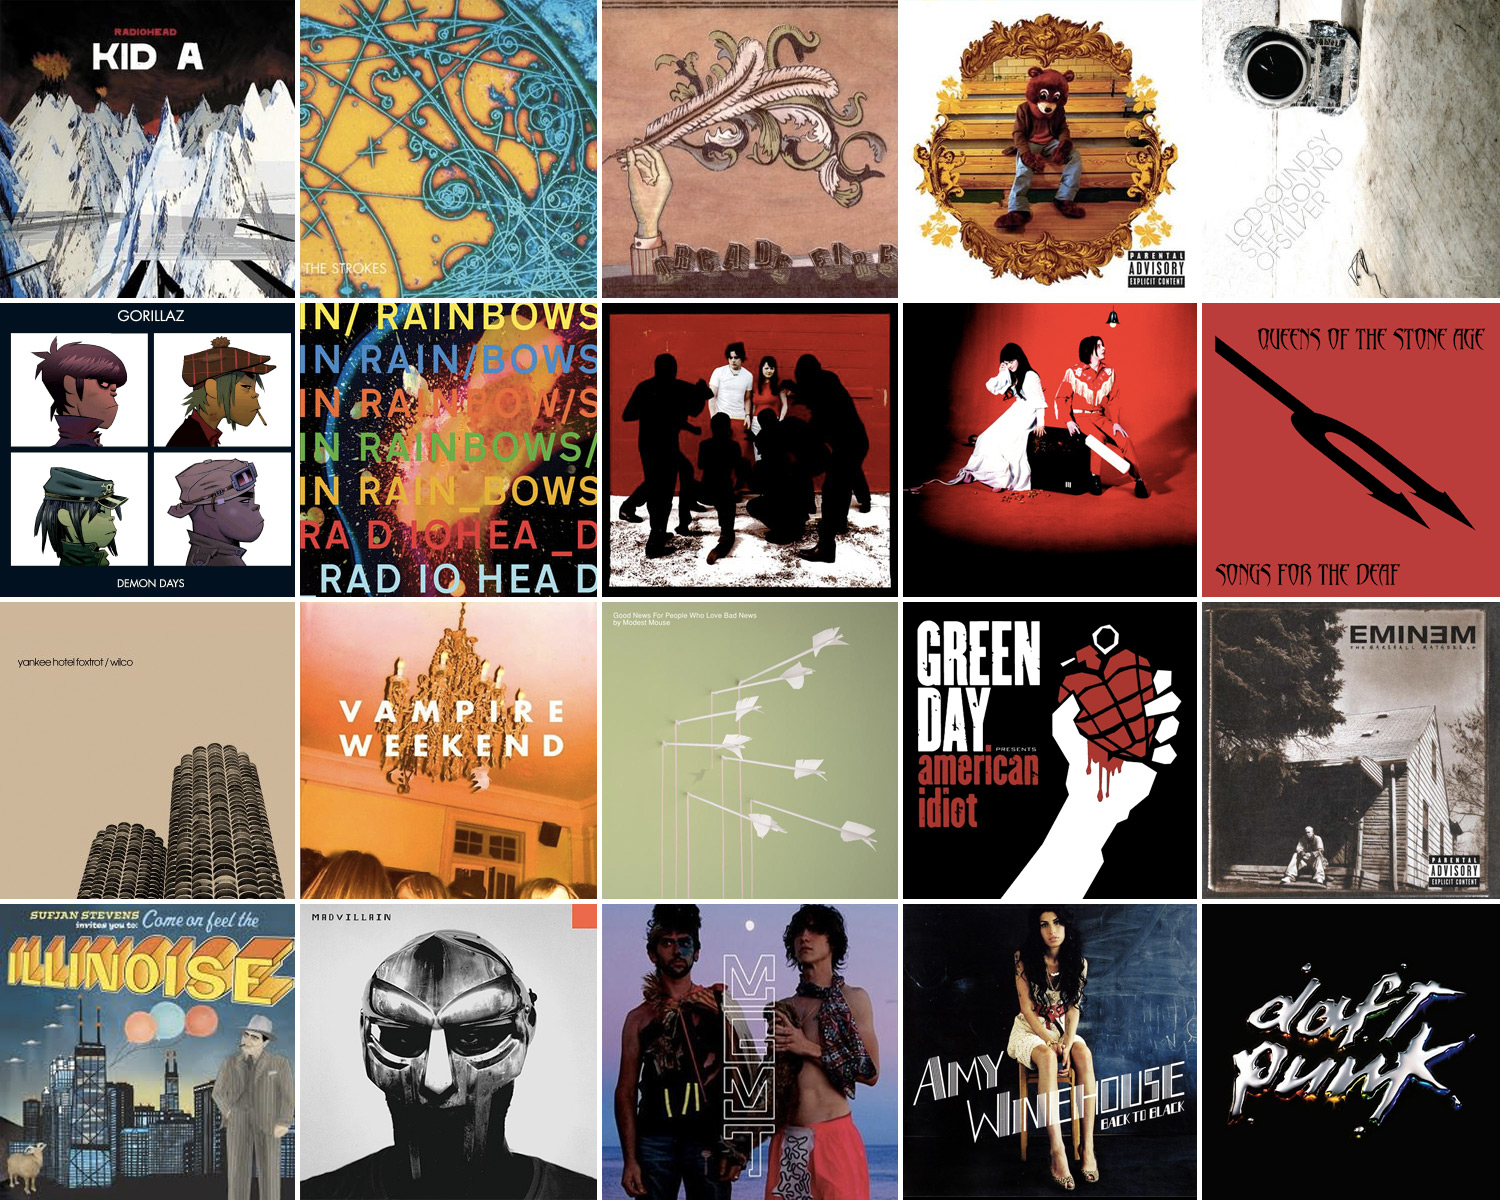 The Best Albums of the 2000s, According to Reddit | Reddit